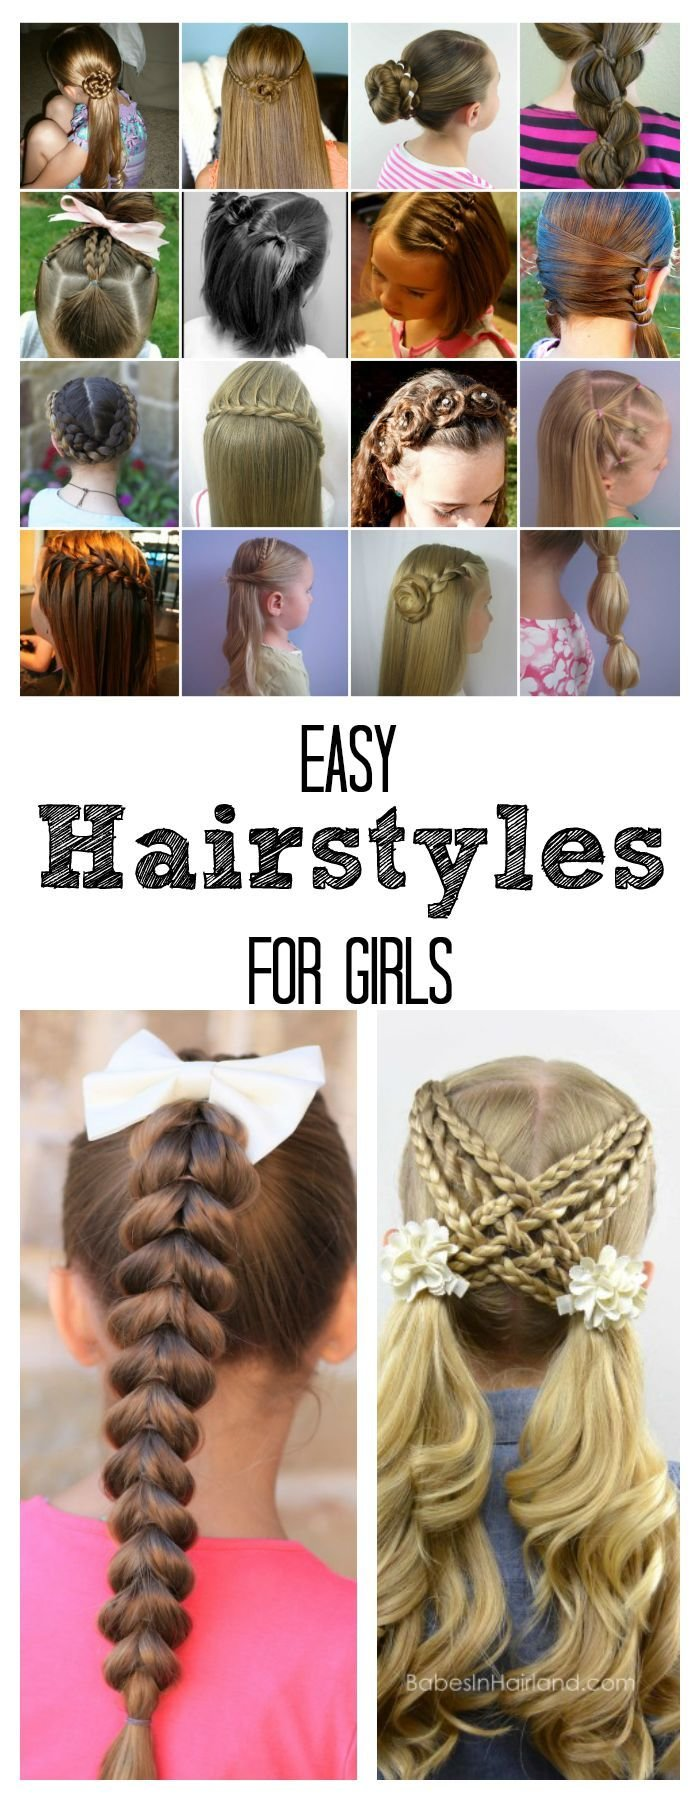 The Best Easy Hairstyles For Girls The Idea Room Pictures